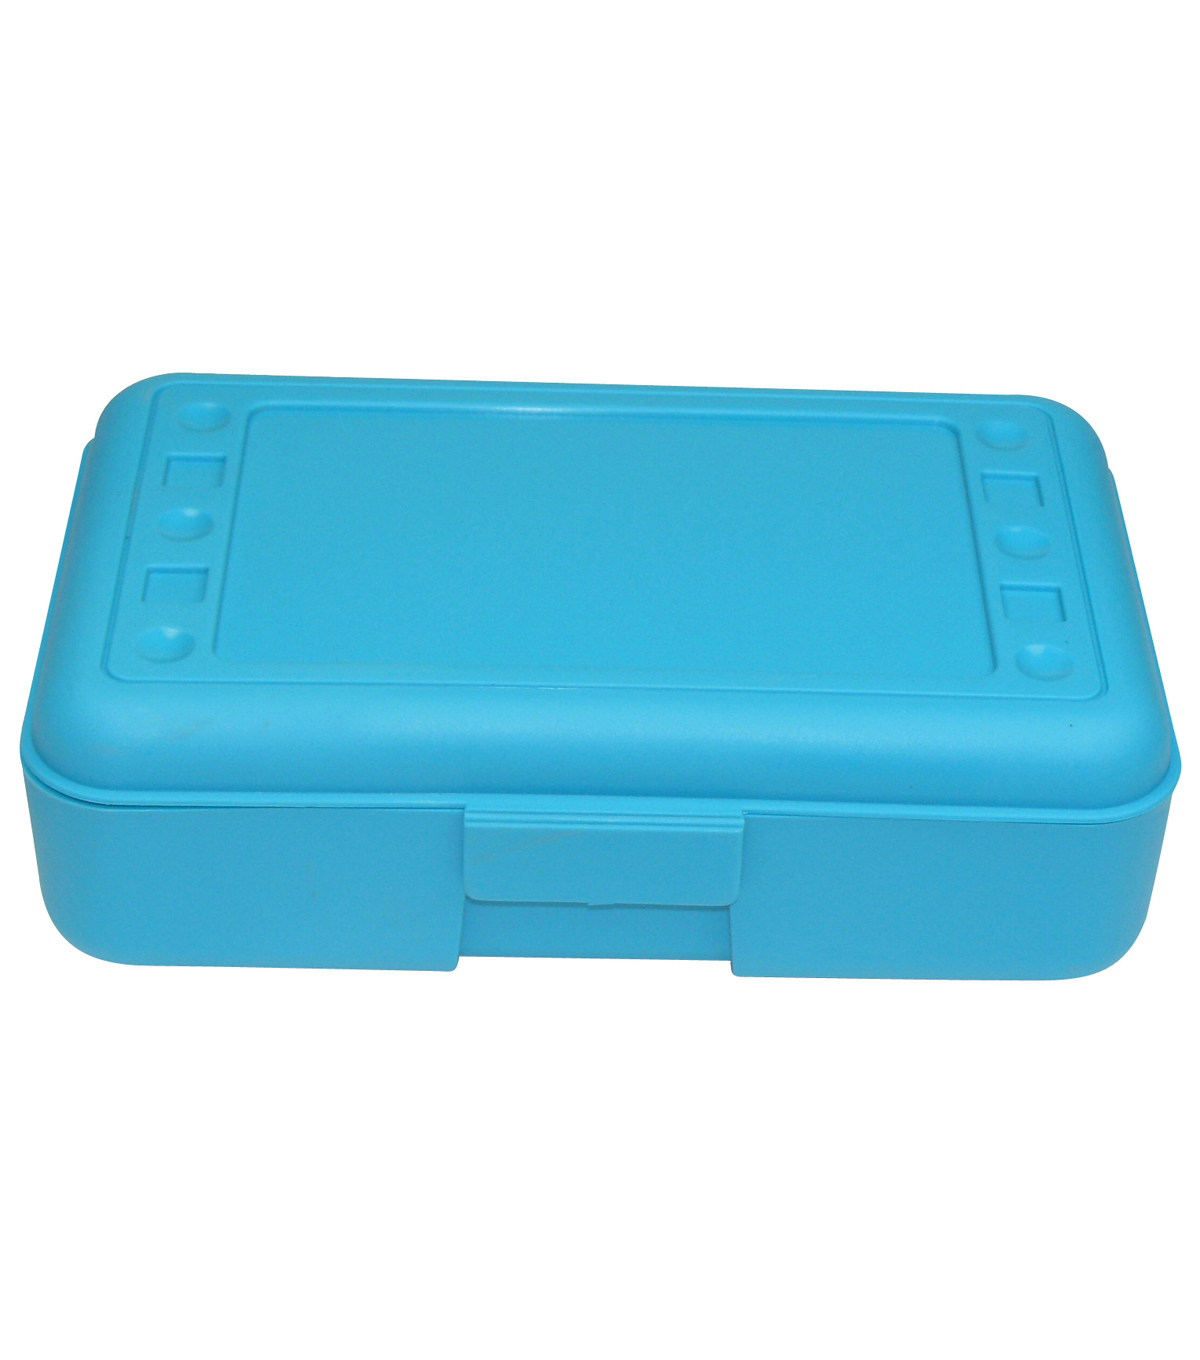 Romanoff Products Pencil Box, Pack of 12, Turquoise